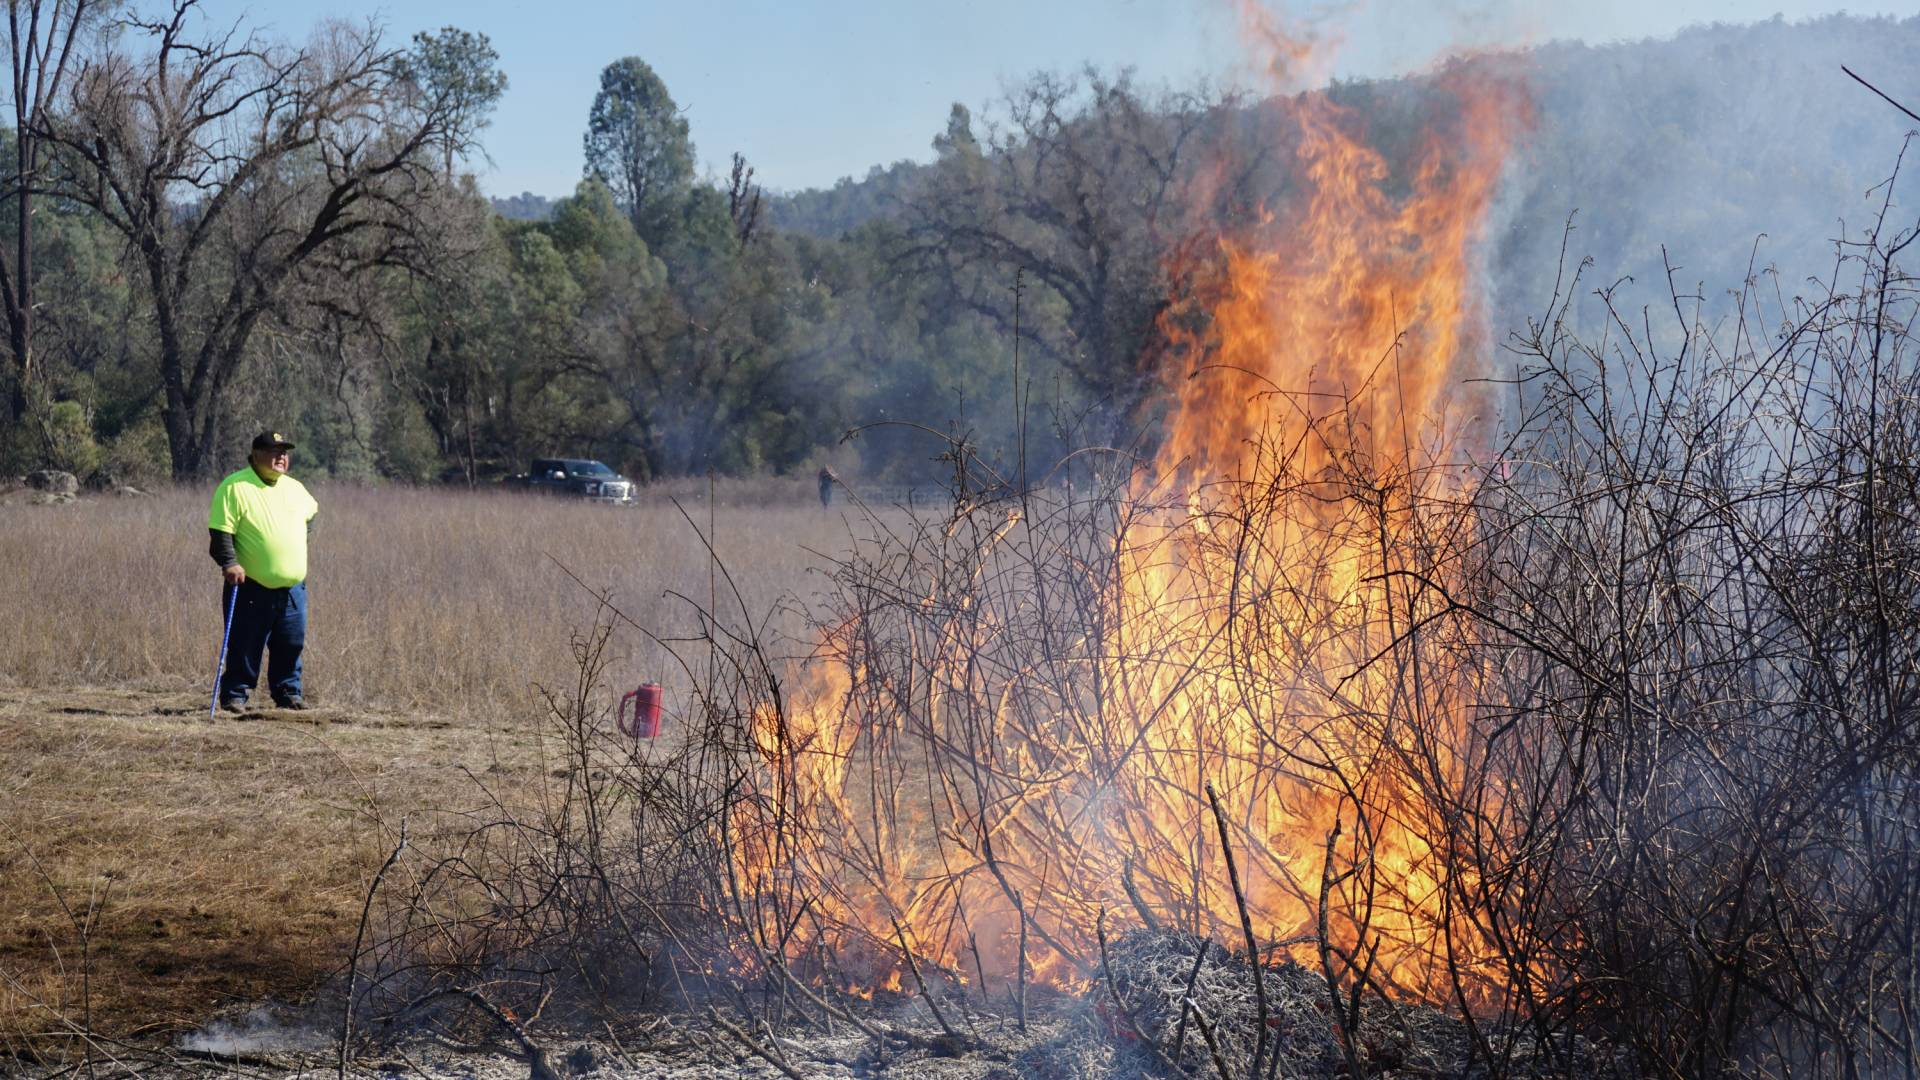 Goode looks on as sourberry bushes burn. After the bushes are burned in the winter, they sprout again in the spring. Lauren Sommer/NPR